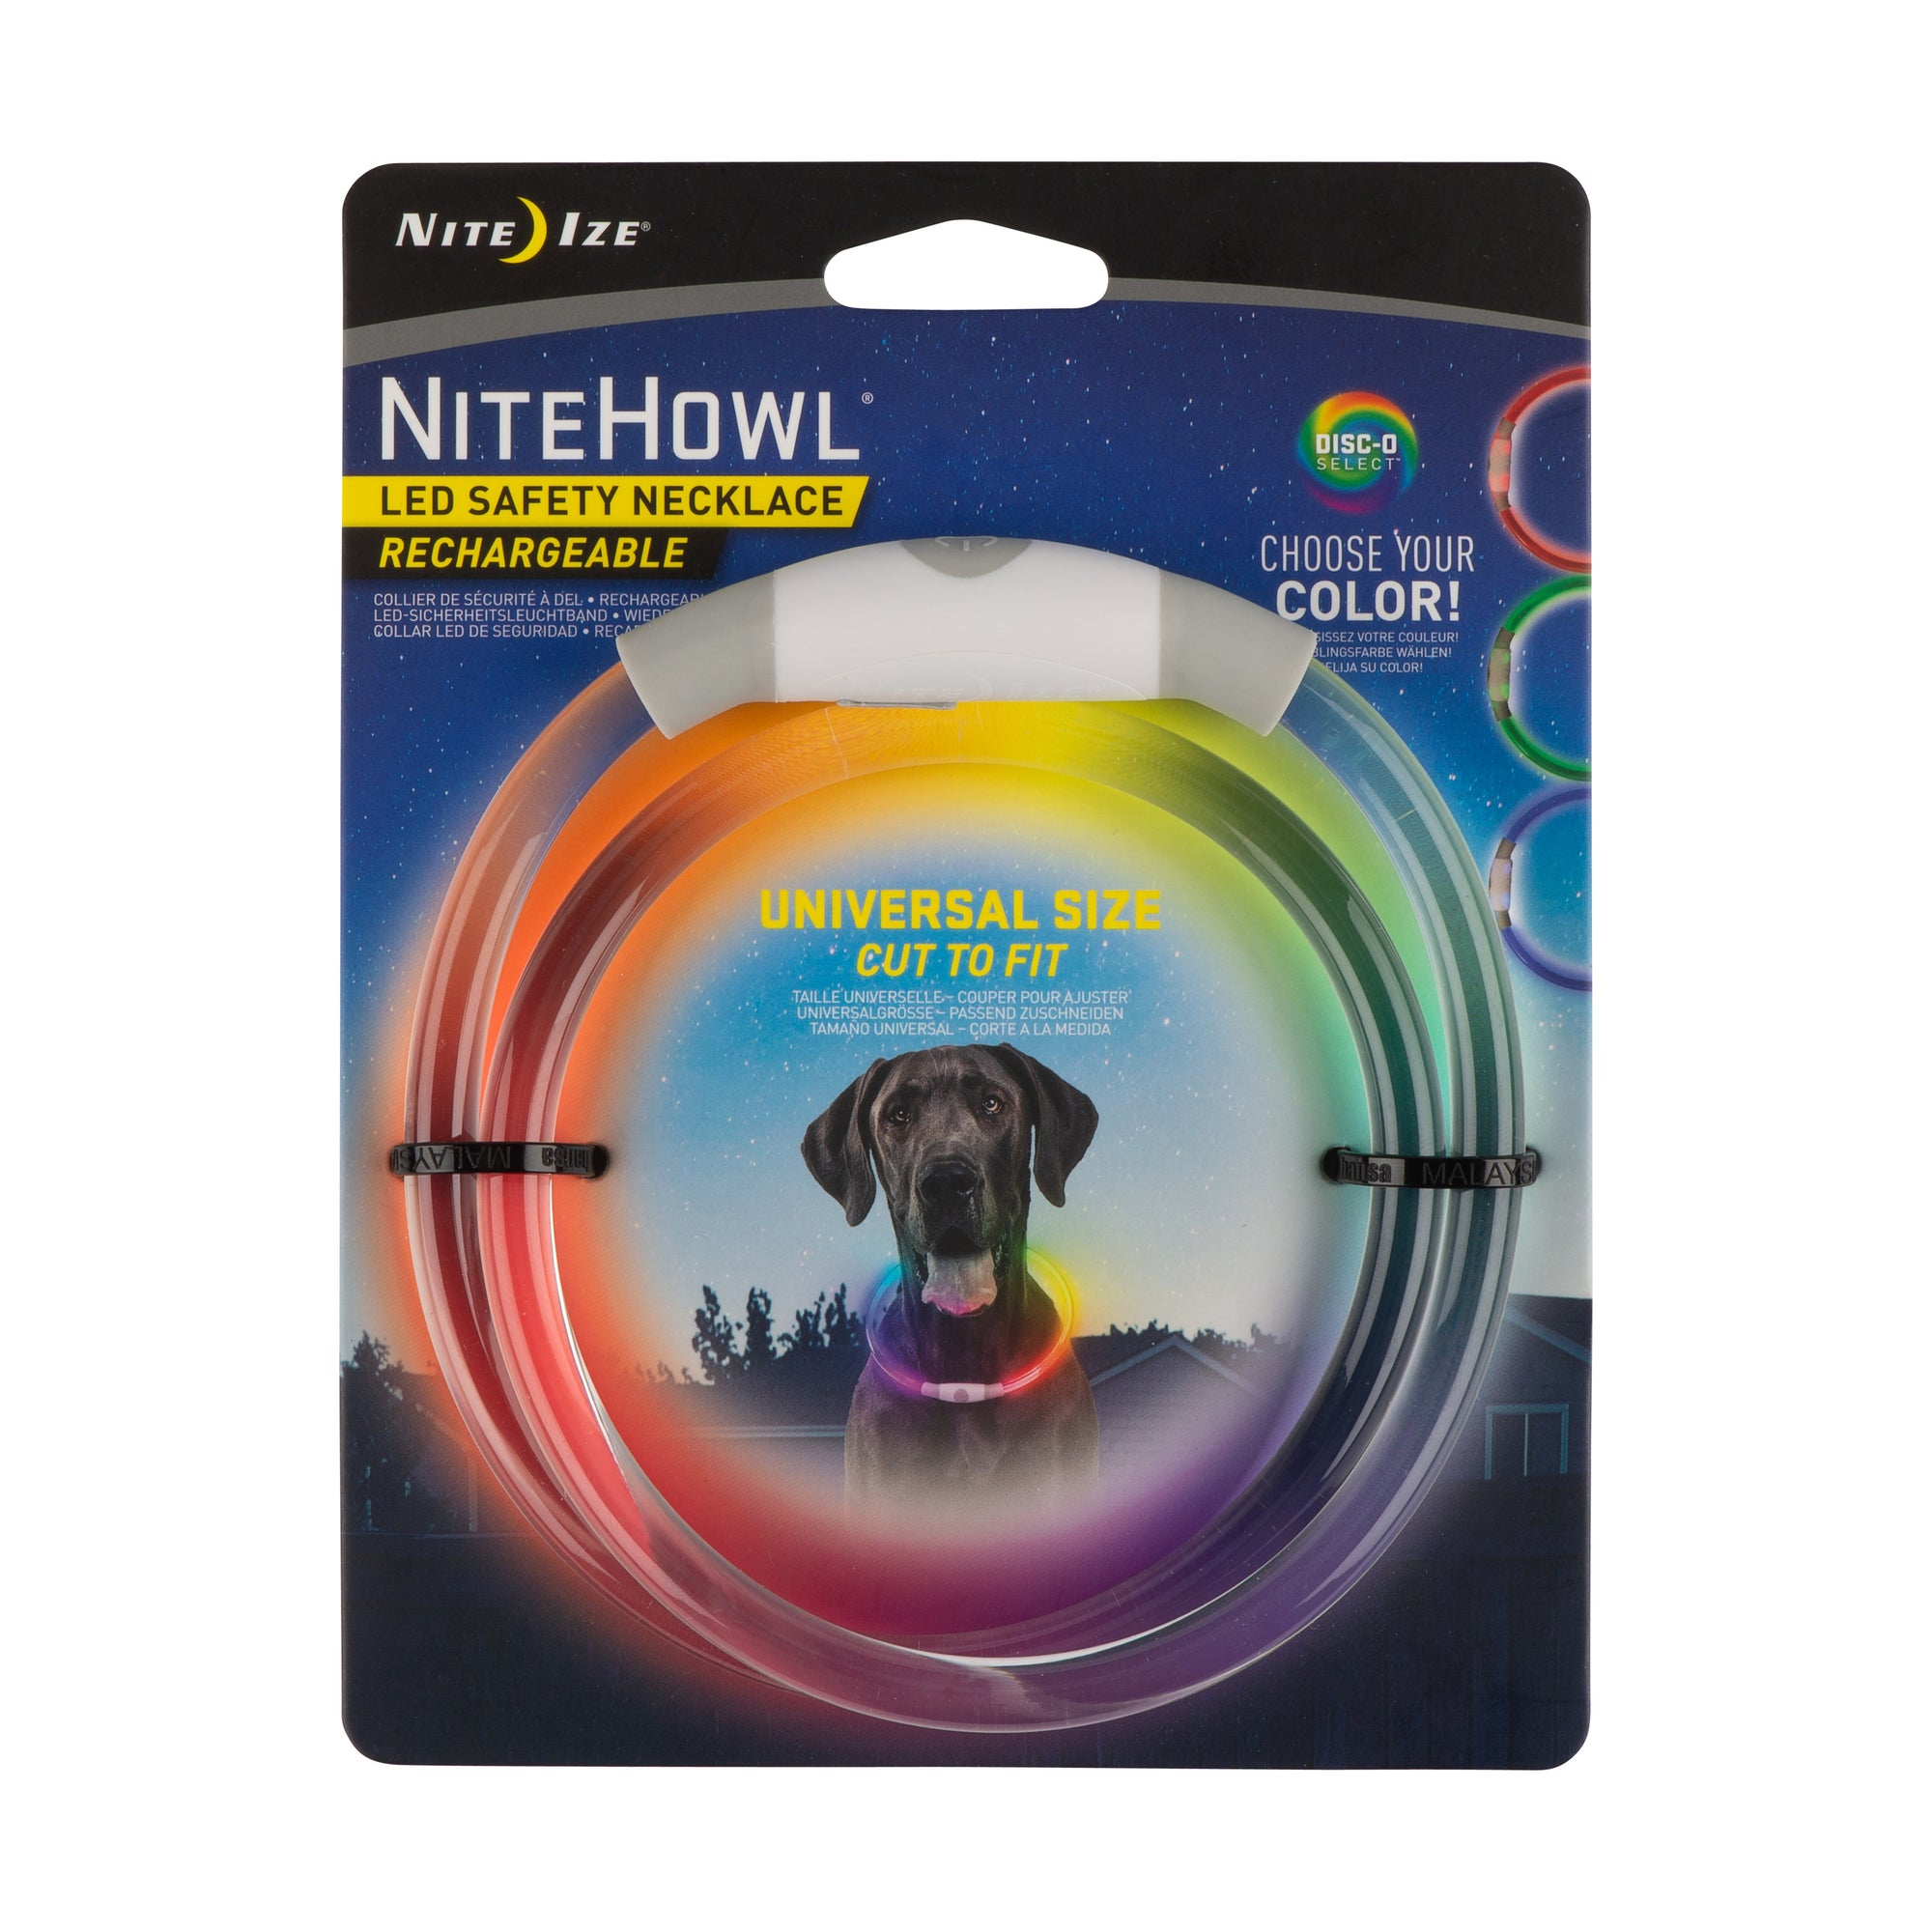 Nite Ize NiteHowl Rechargeable LED Safety Necklace - Disc-O Select